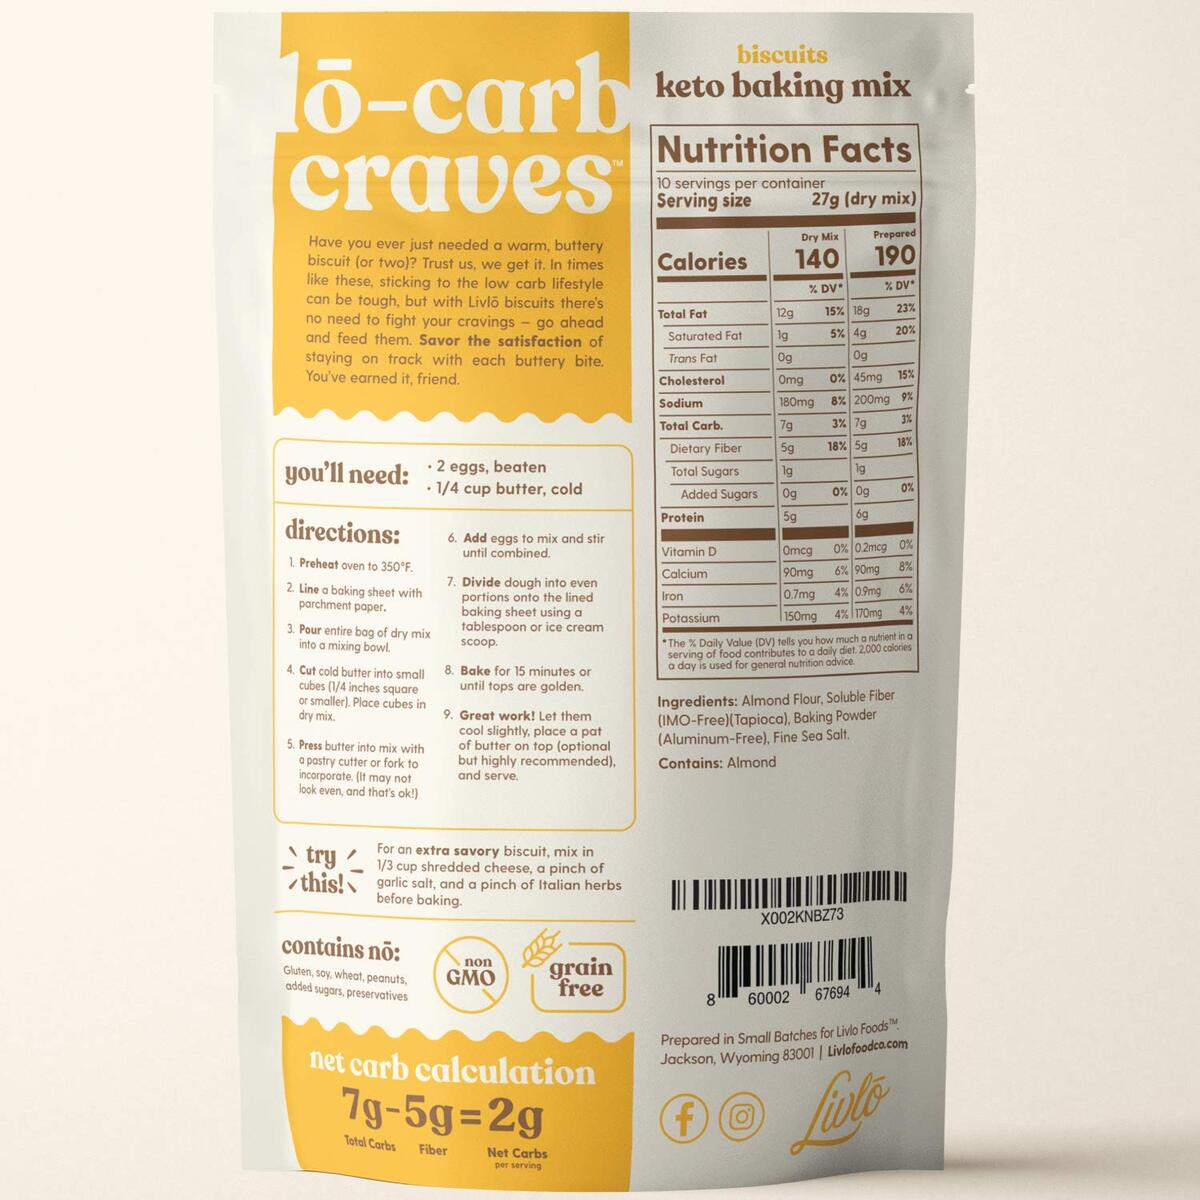 Keto Biscuit Mix - Low Carb & Gluten Free Baking Mix - 2g Net Carbs - Fast, Easy and Delicious Keto Friendly Food - 10 Servings - Classic Butter